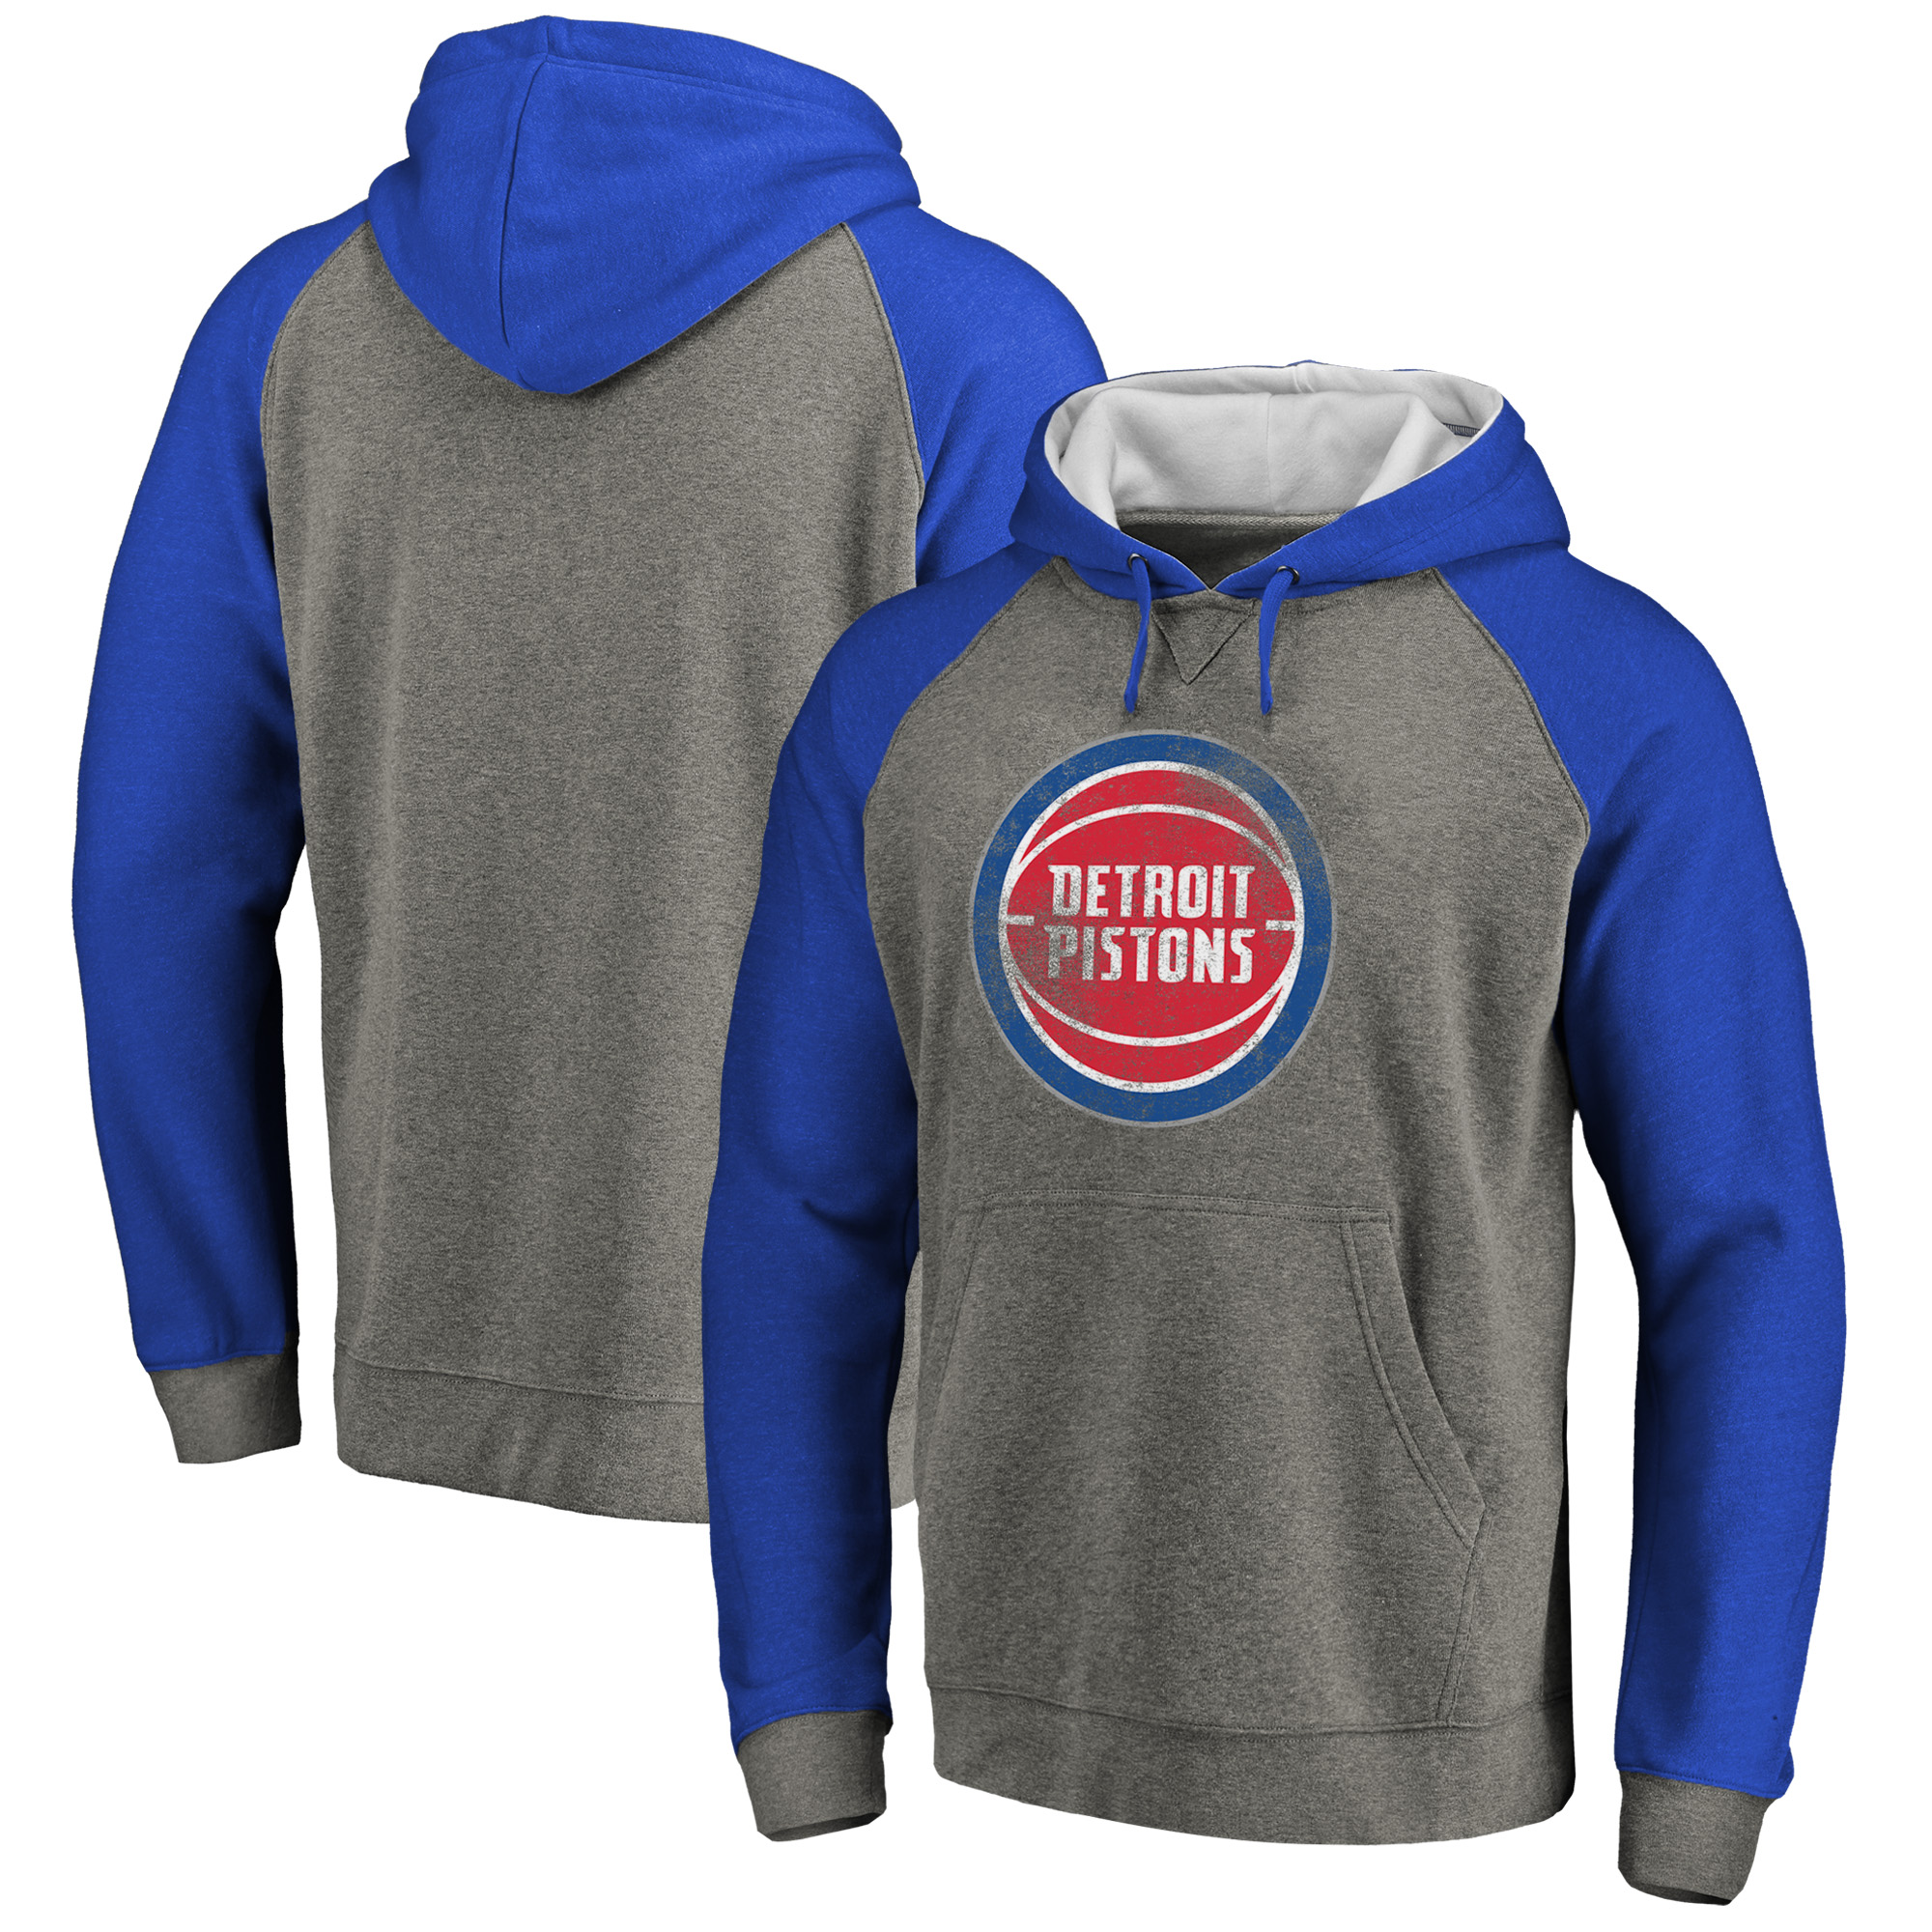 Detroit Pistons Fanatics Branded Distressed Logo Tri-Blend Pullover Hoodie - Ash/Royal